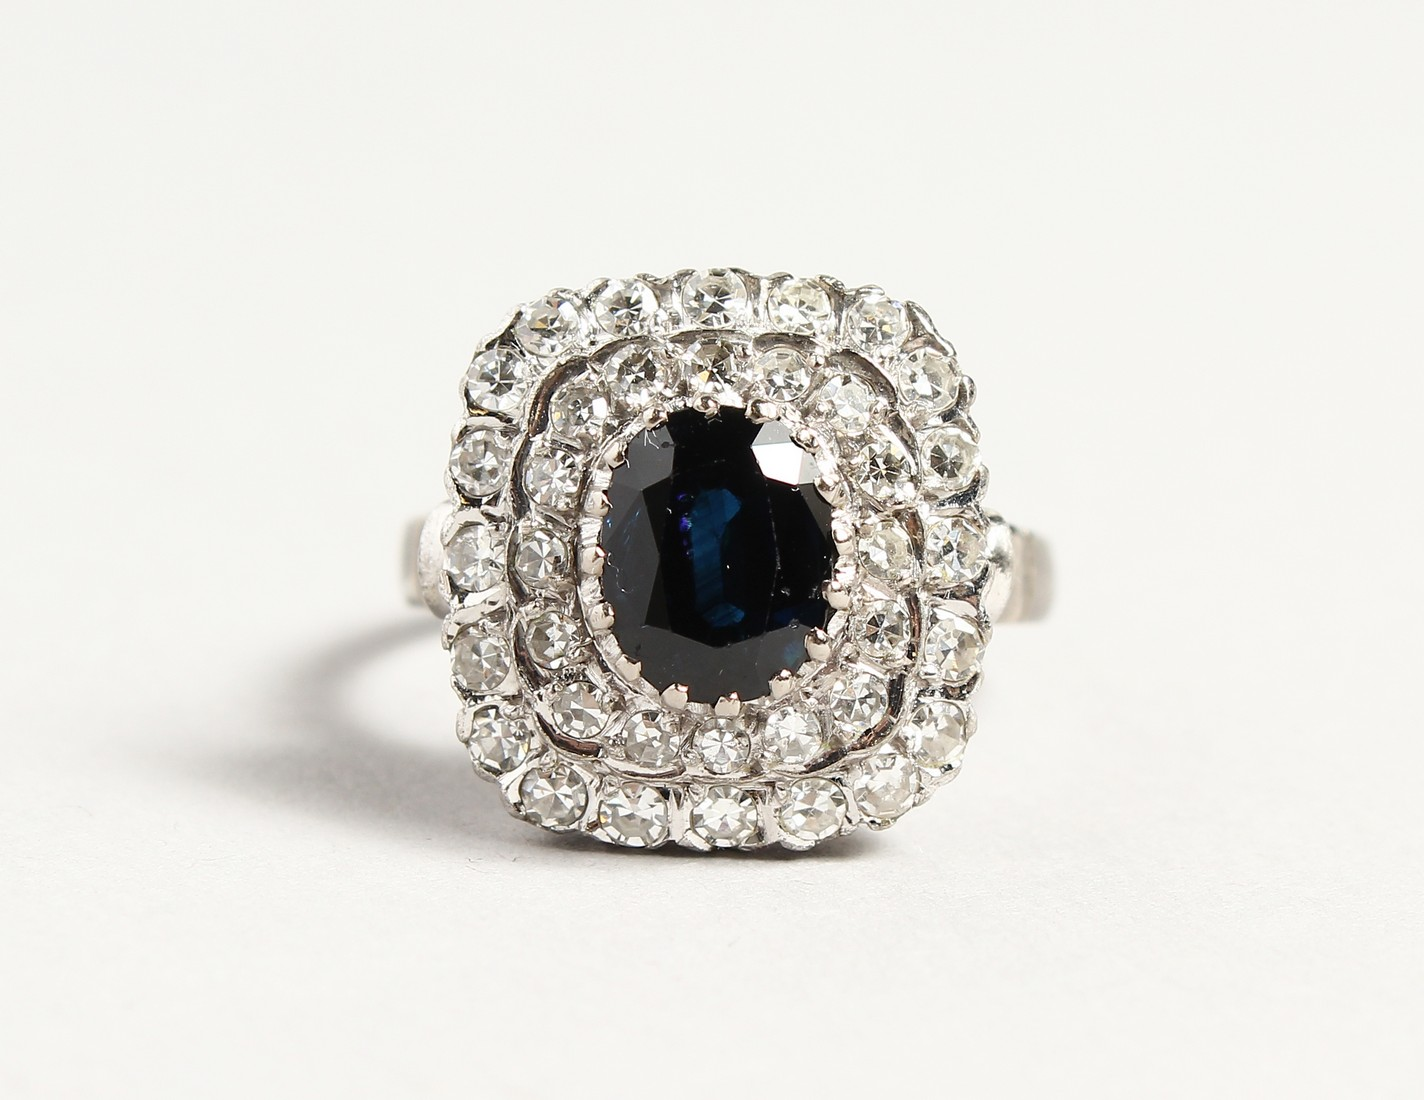 A SUPERB 18CT WHITE GOLD SAPPHIRE AND DIAMOND CLUSTER RING.